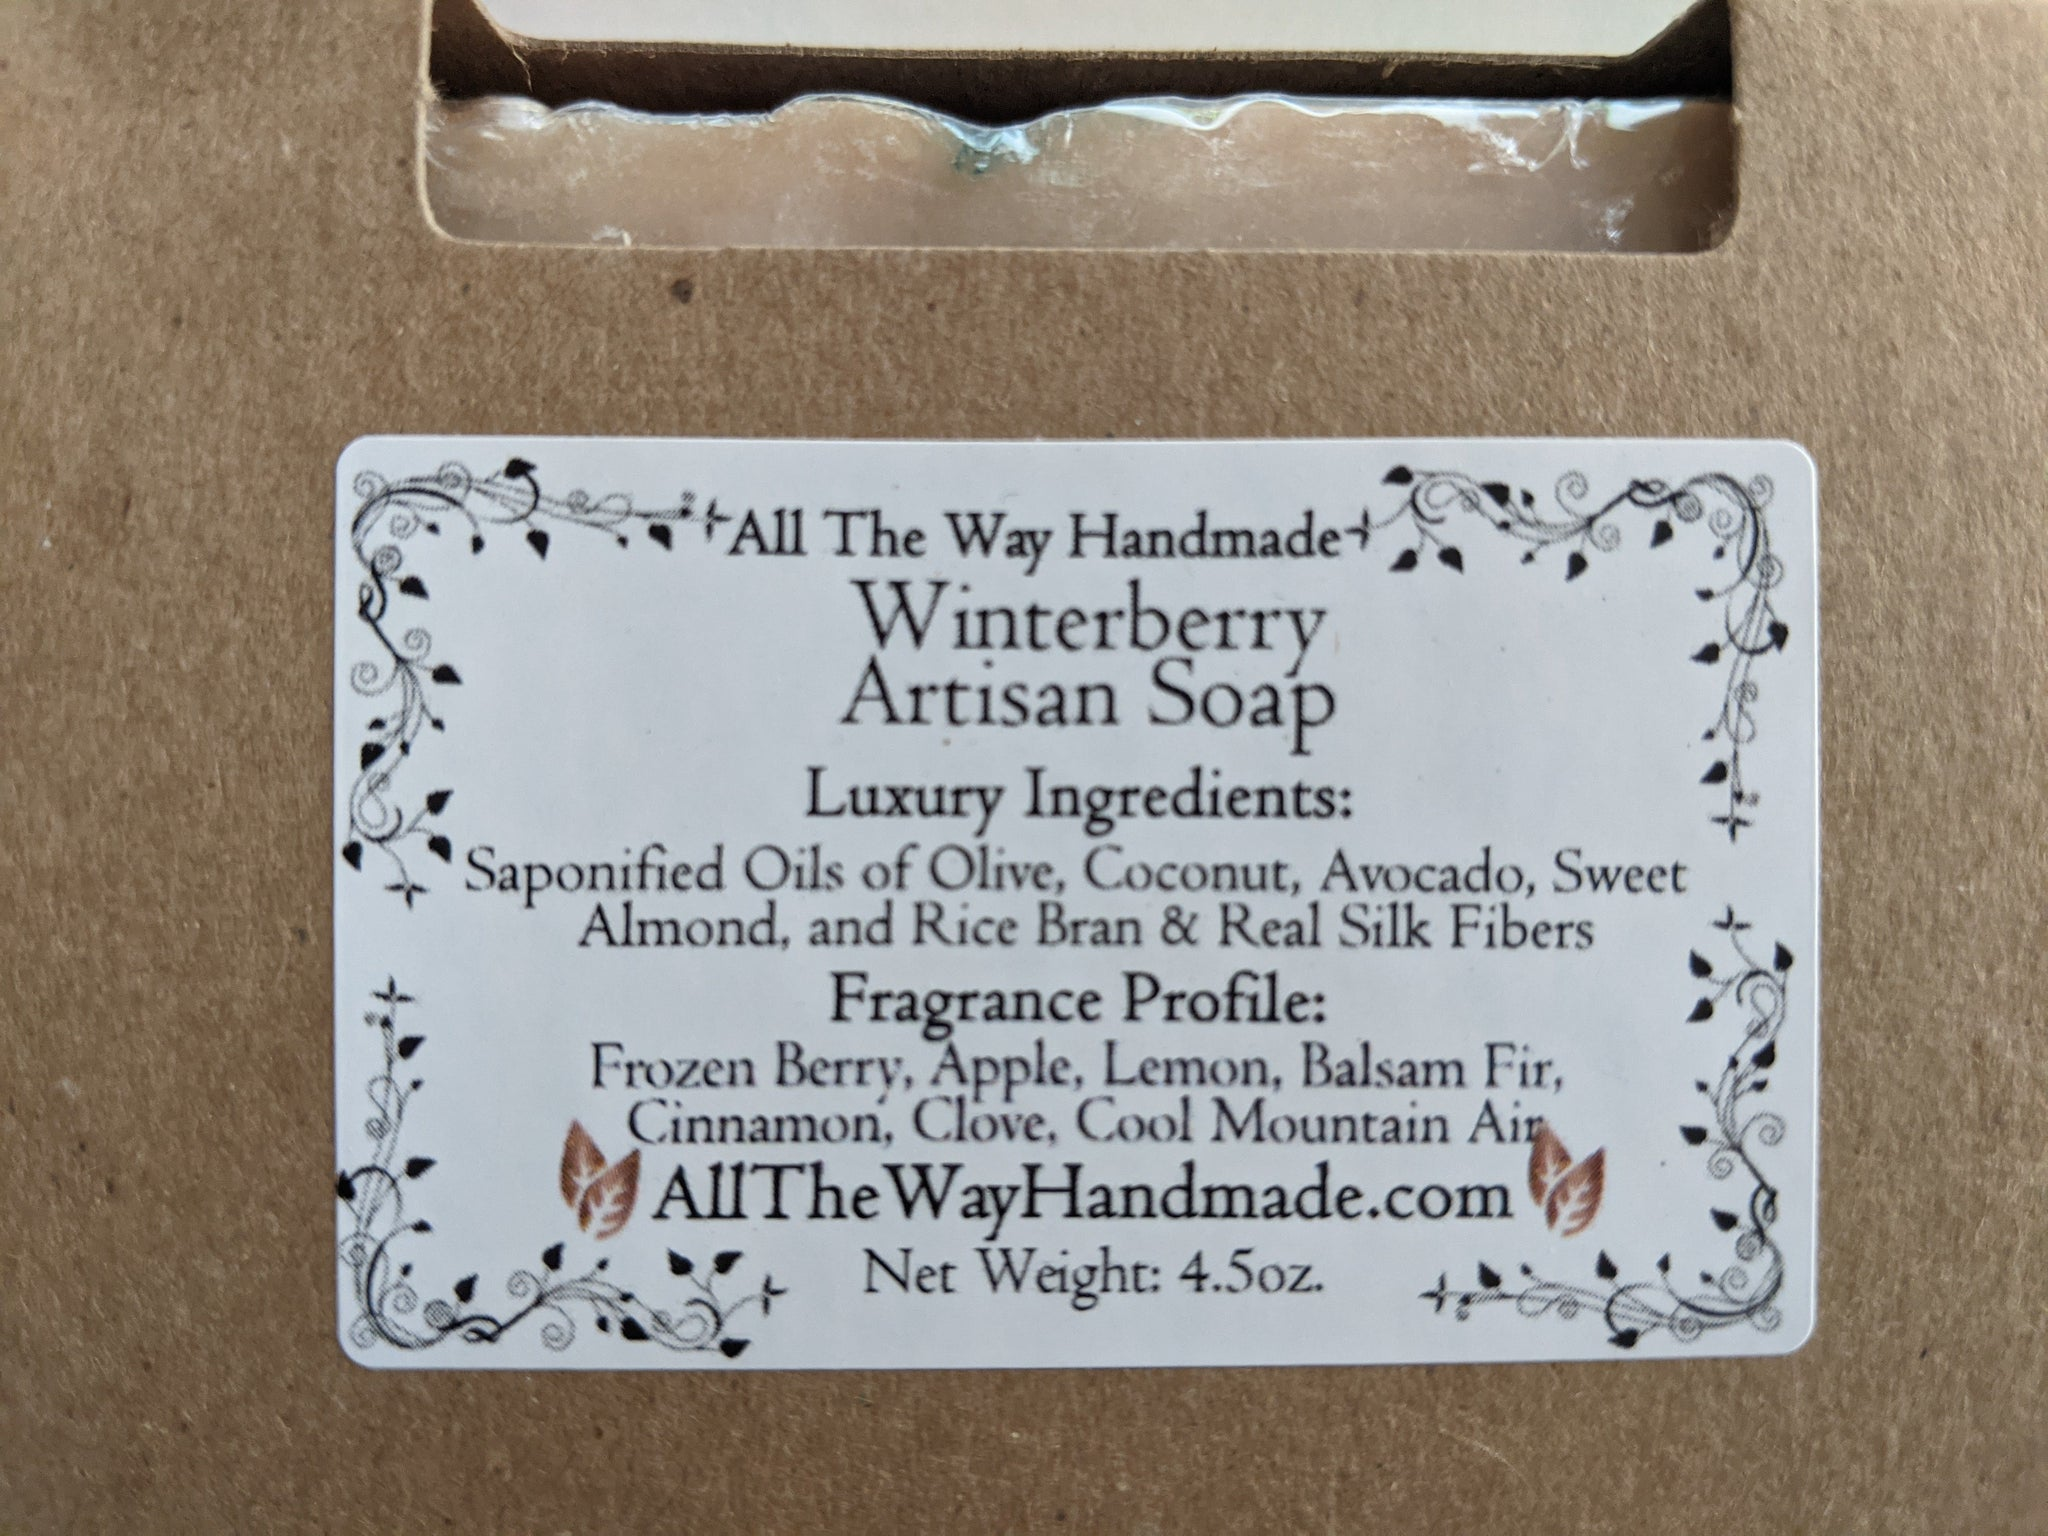 Winterberry Artisan Soap